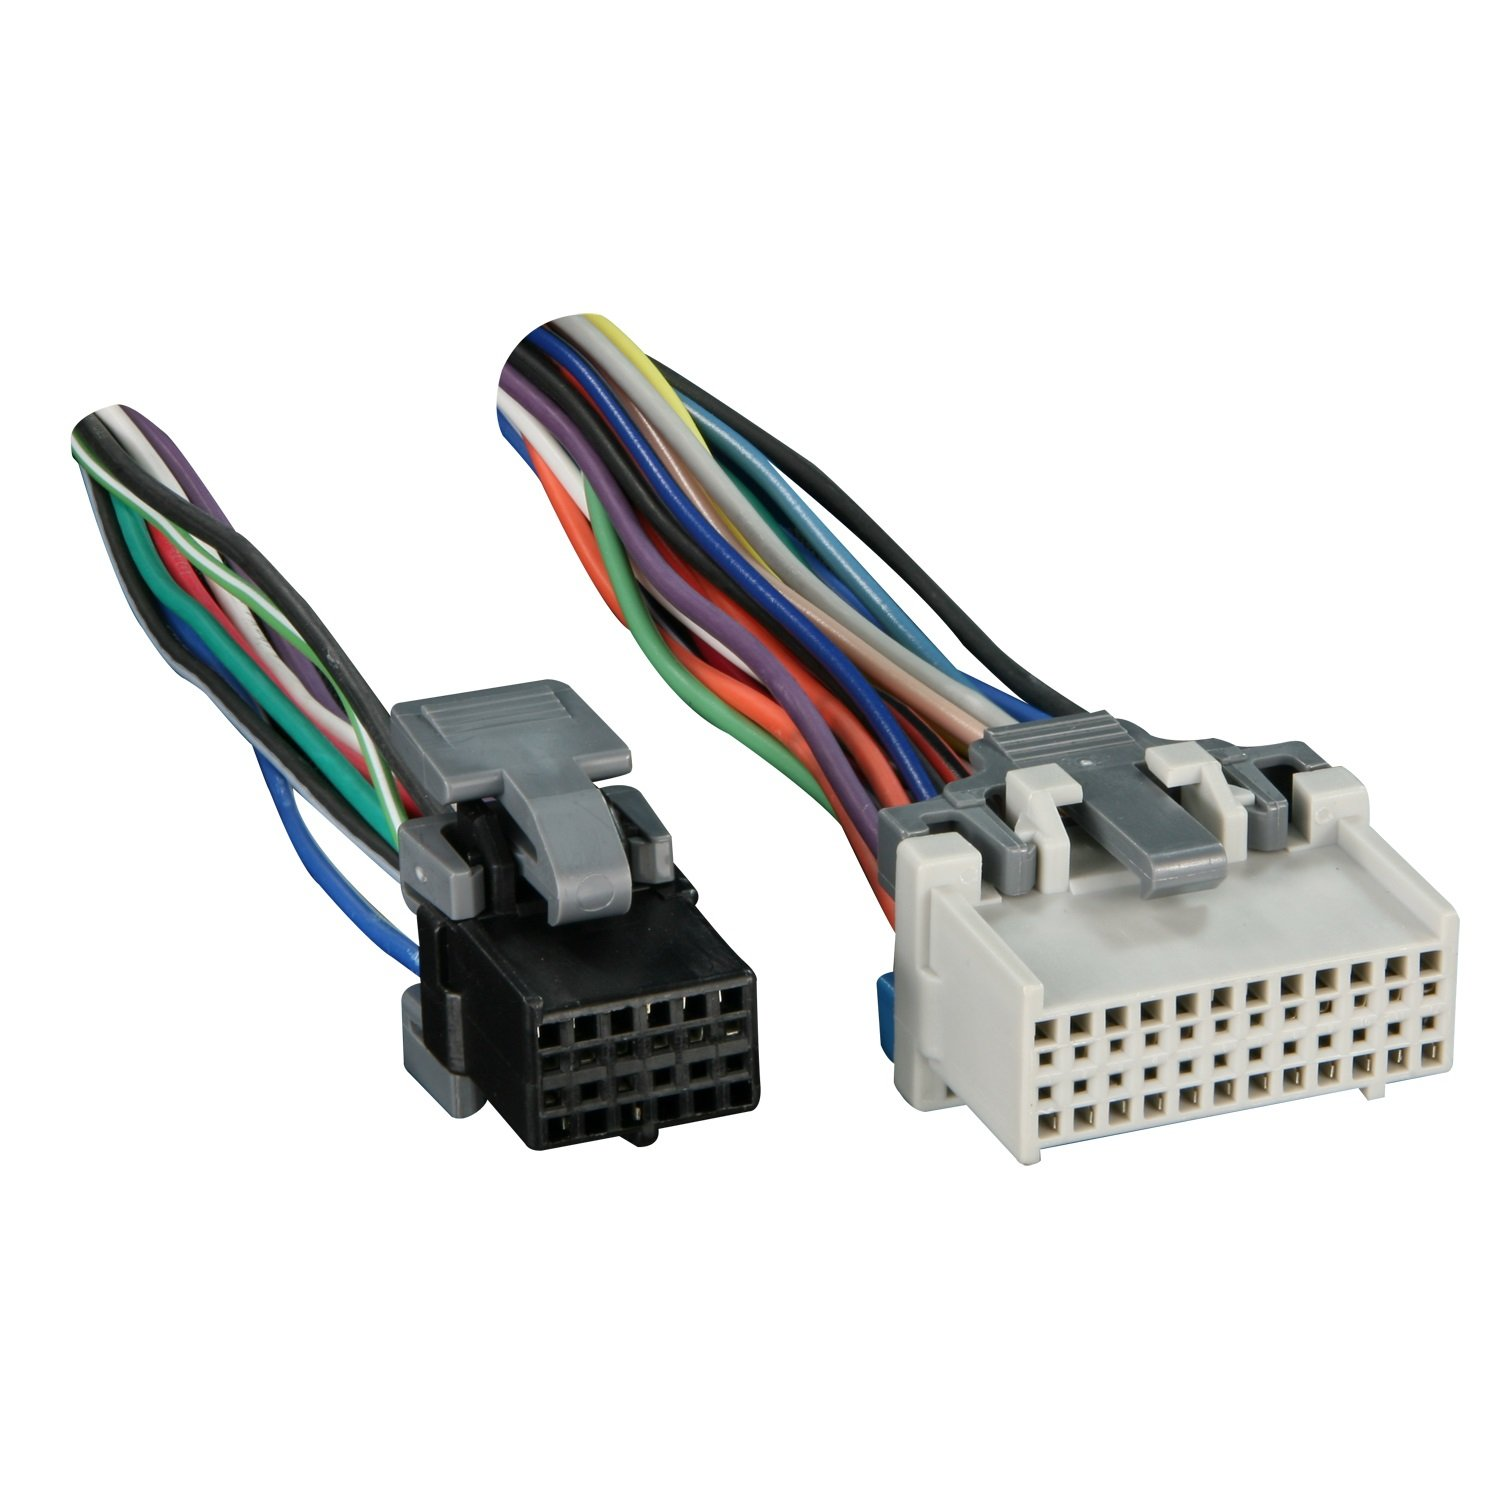 711log4bdML._SL1500_ amazon com metra turbowires 71 2003 1 wiring harness car electronics where to buy a trailer wiring harness at mifinder.co